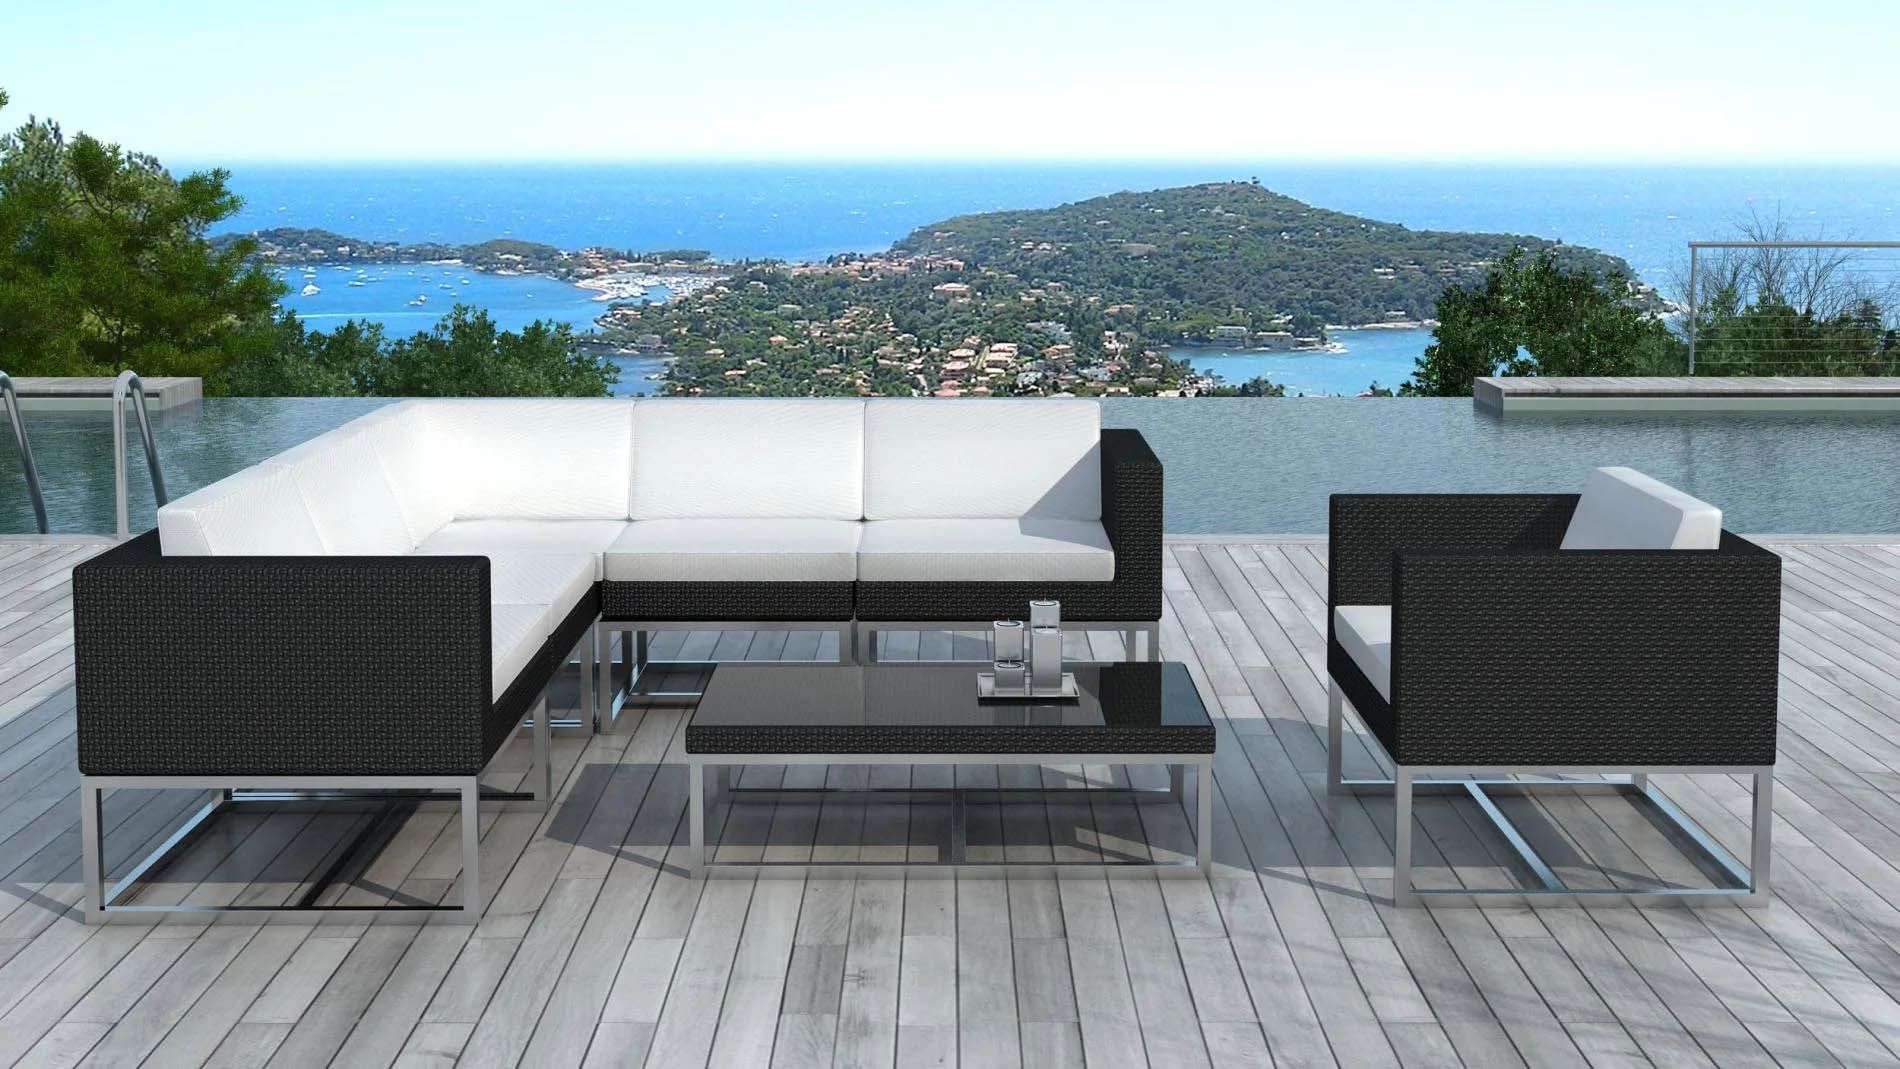 salon de jardin design 6 l ments en r sine noire coussins. Black Bedroom Furniture Sets. Home Design Ideas